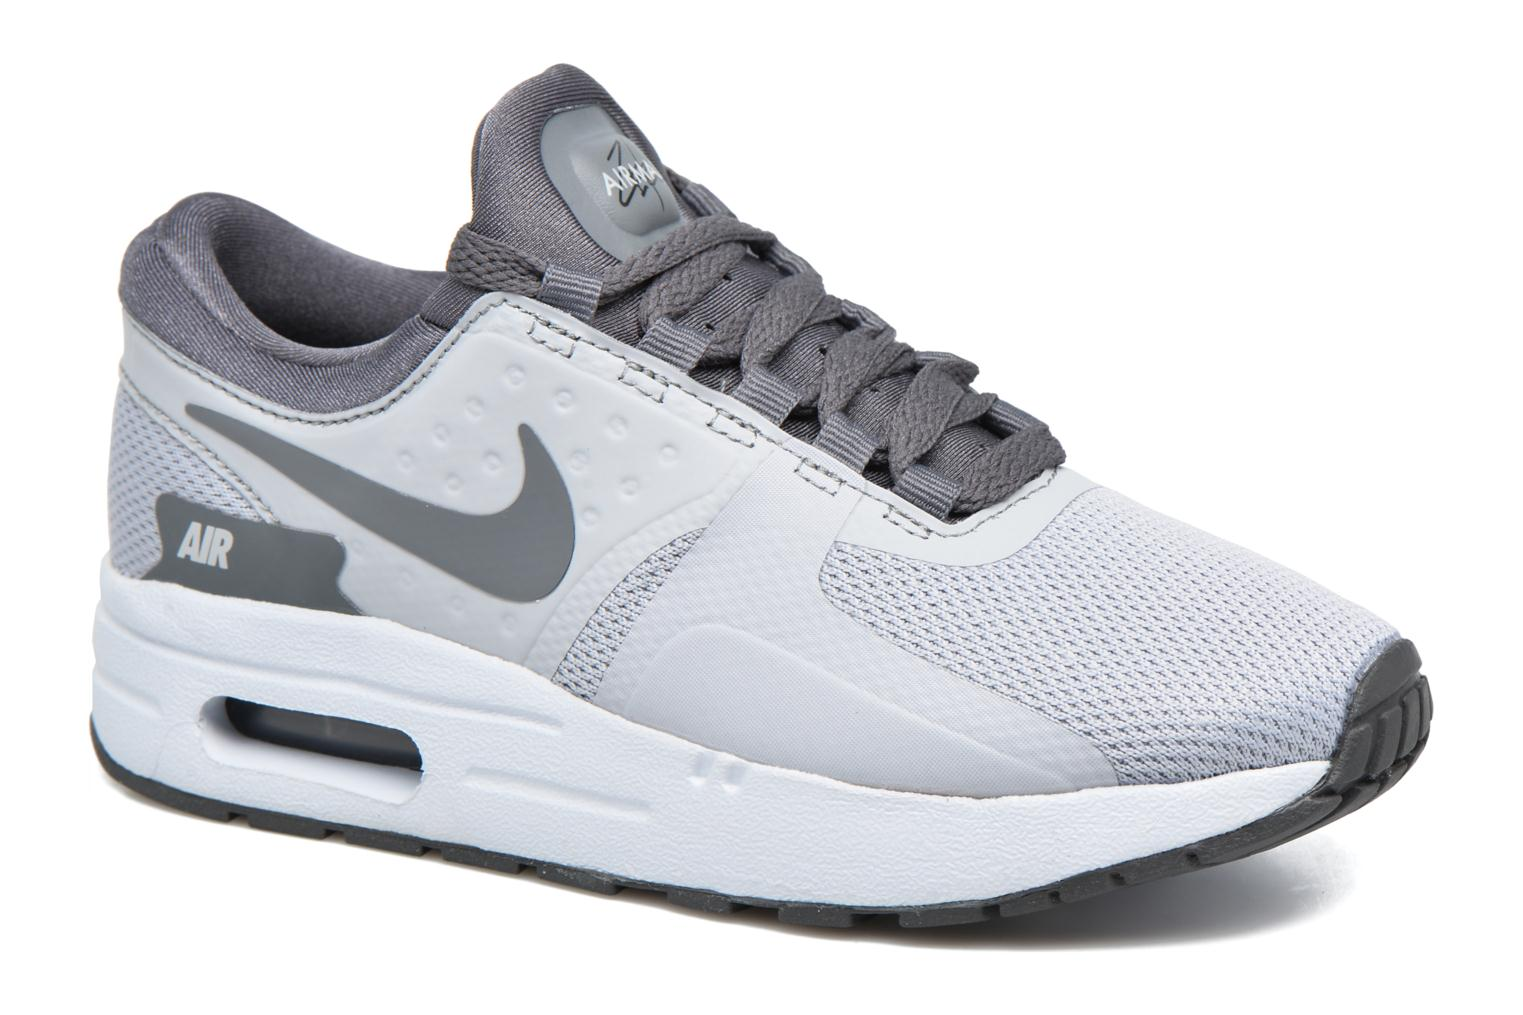 Wolf Grey/Dark Grey-Pure Platinum-Black